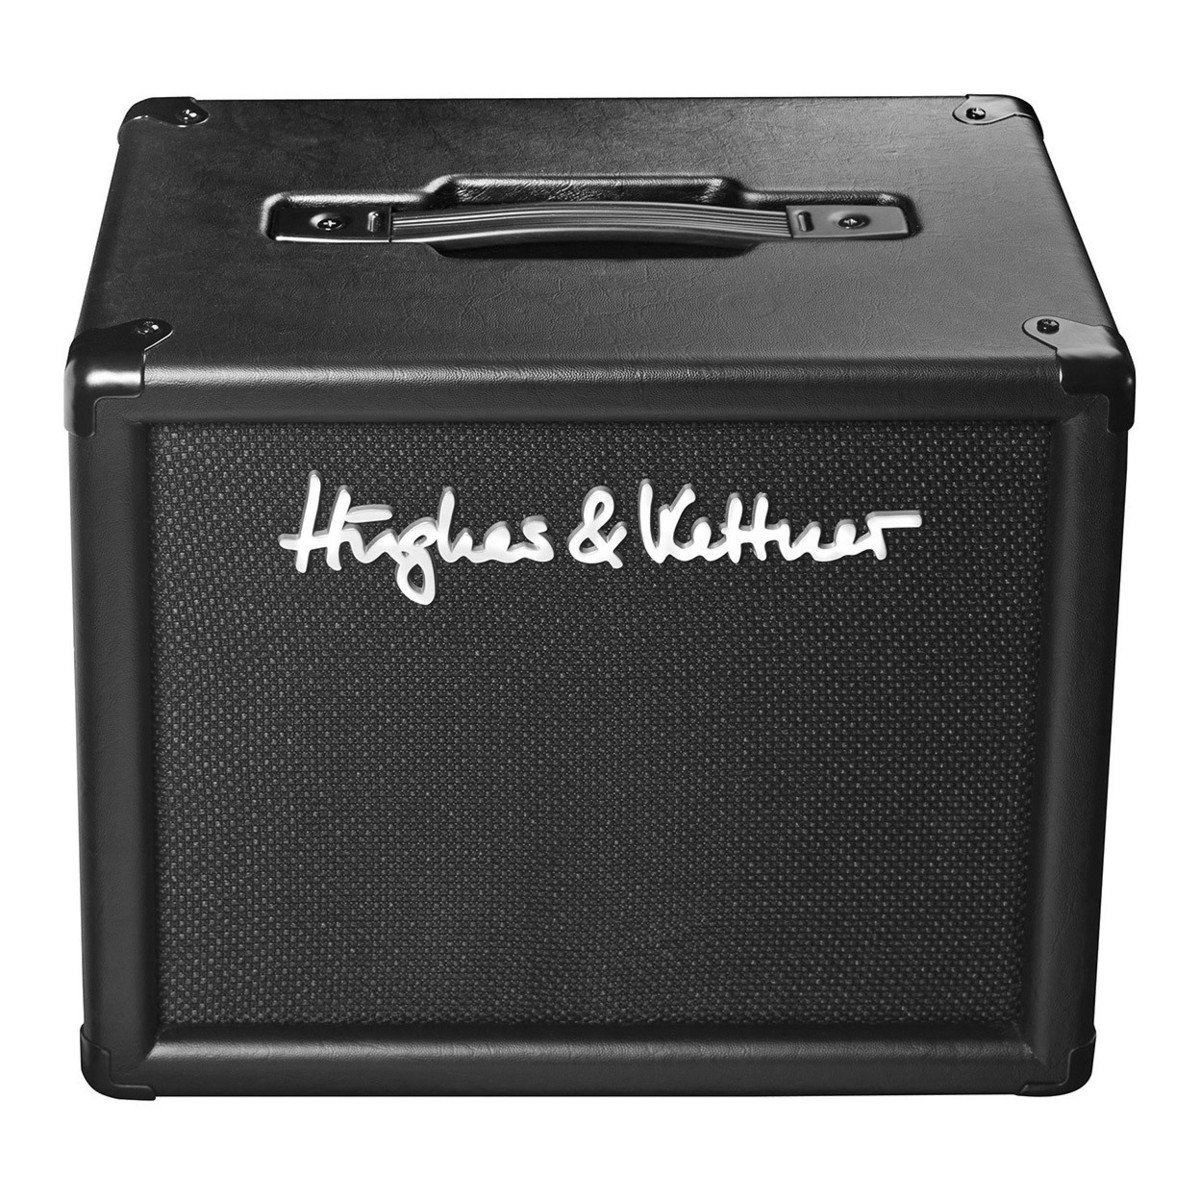 Hughes & Kettner TM 110 Cabinet, 1X10 at Gear4music.com